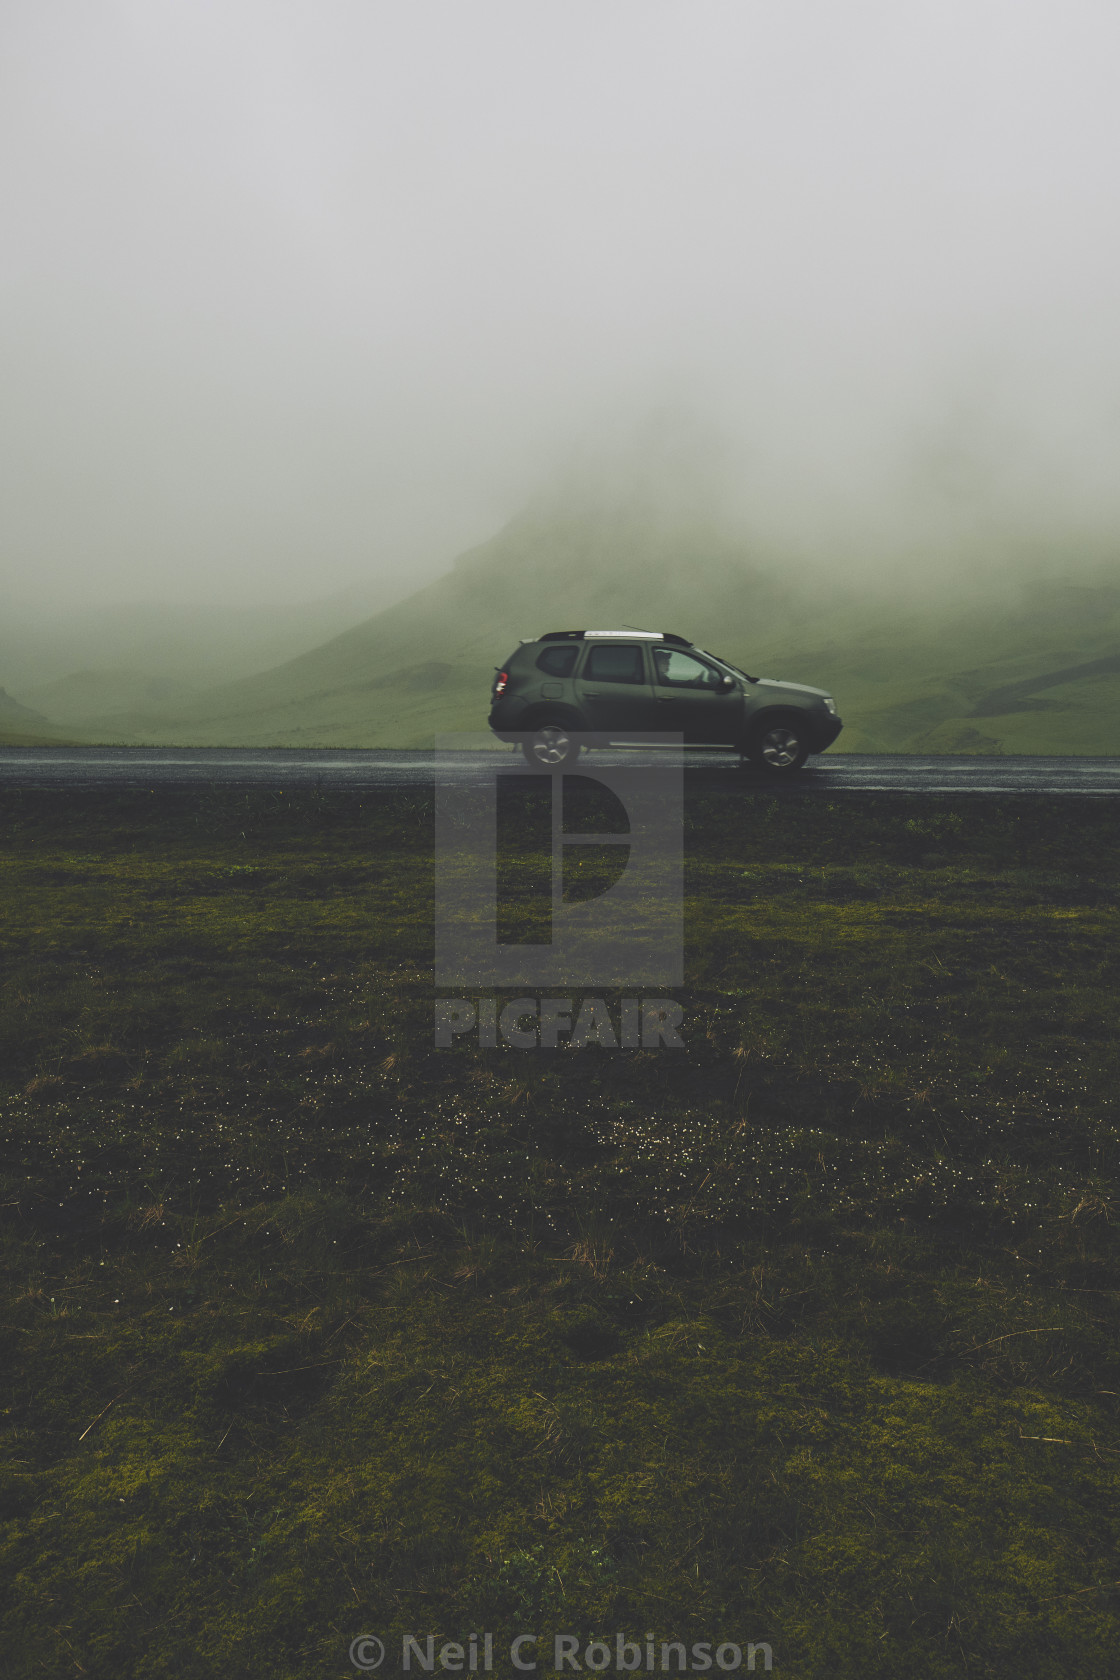 A lone car traveling in a low cloud mountain landscape